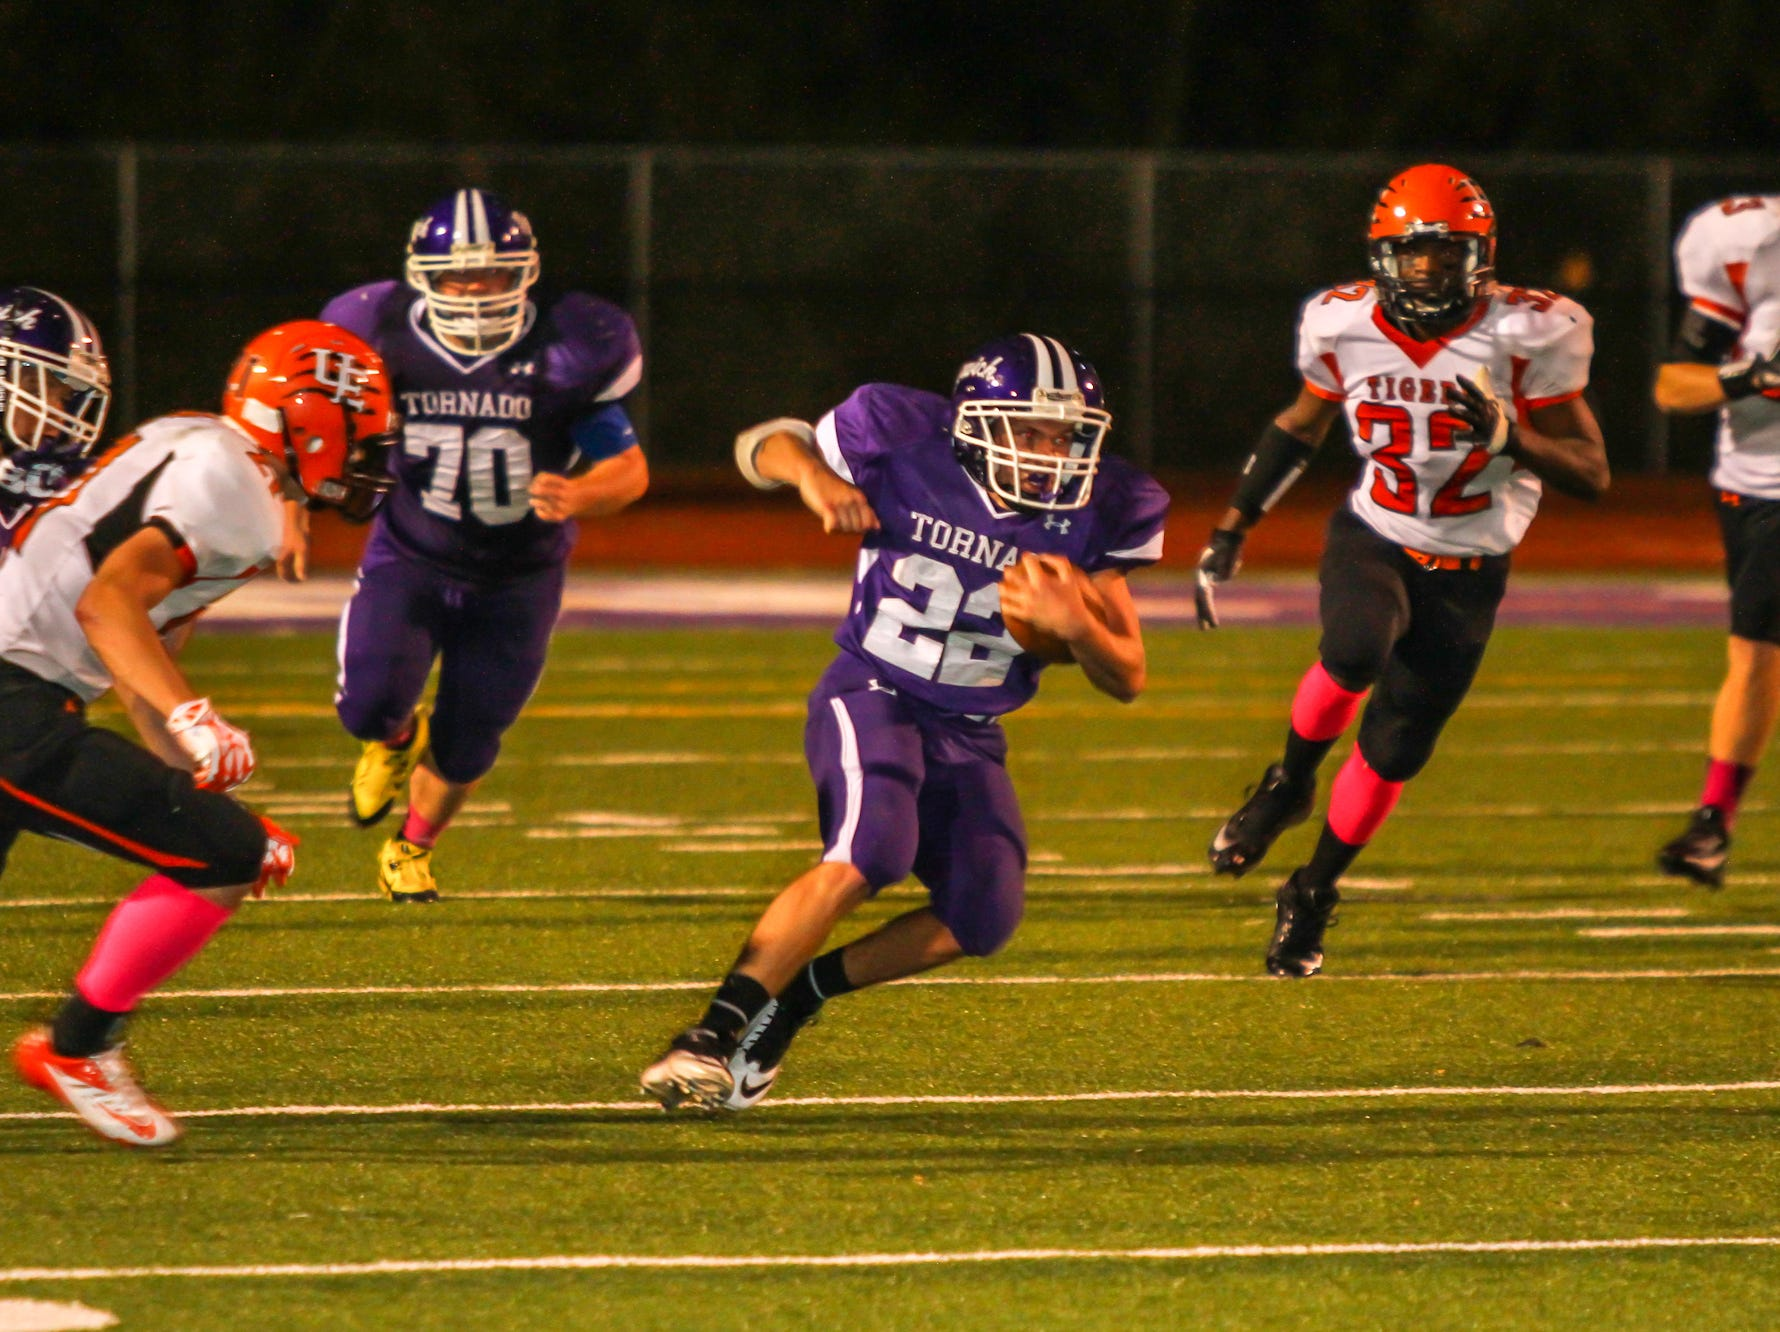 In 2013, Norwich's Keegan Franklin looks for running room against the Union-Endicott defense. Franklin was limited to 14 yards rushing on 10 carries by the Tigers.